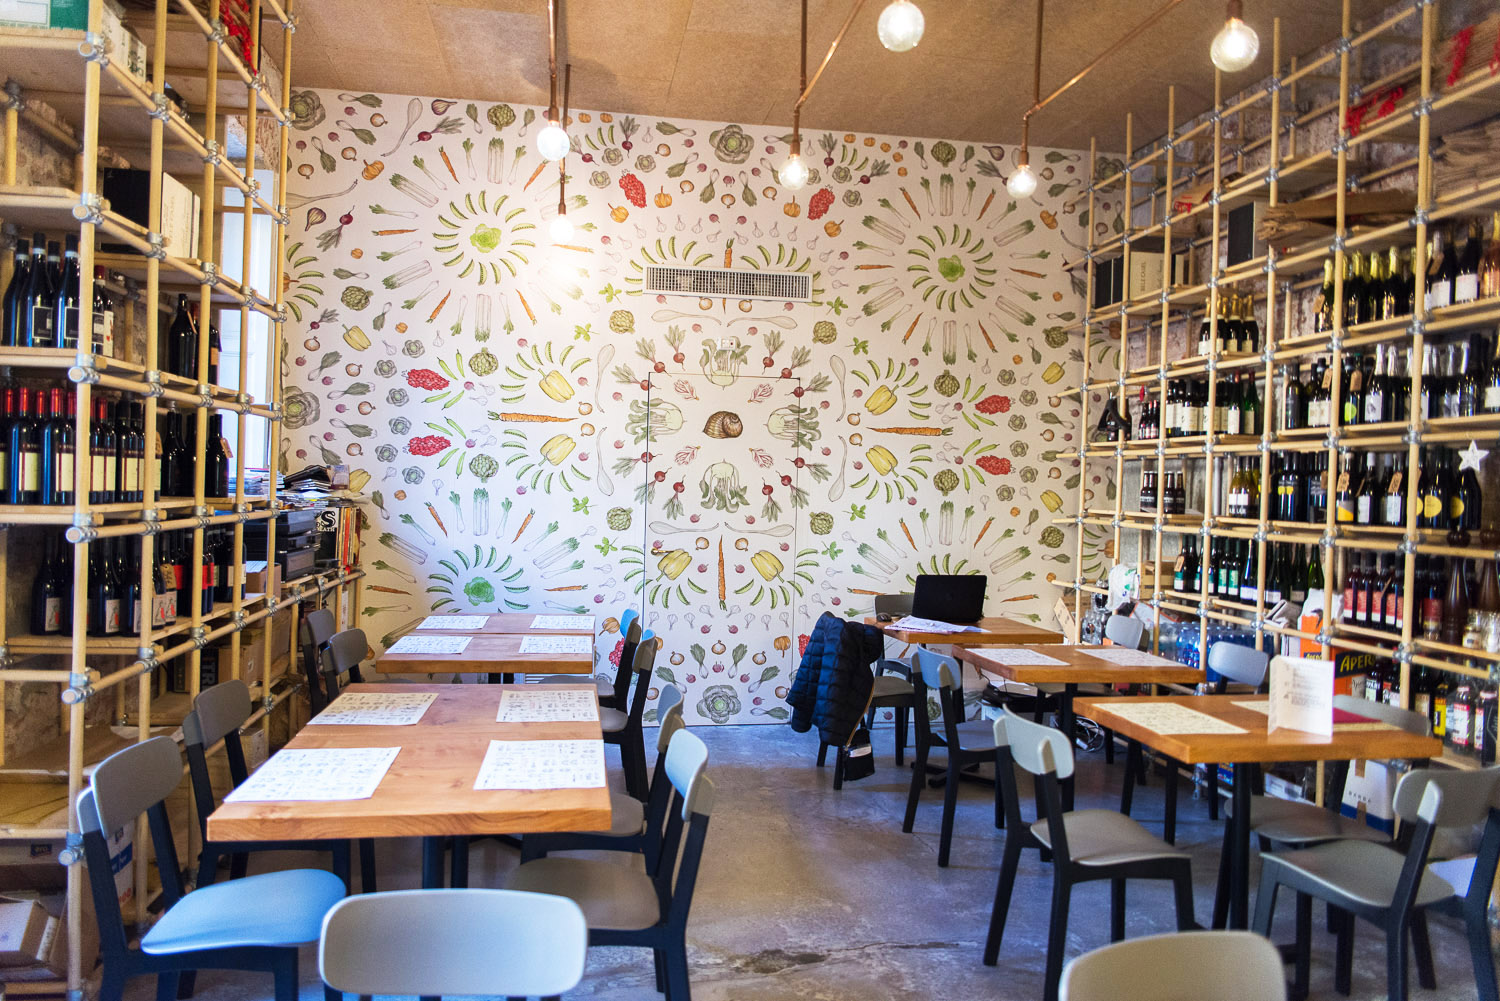 Specialty coffee and brunch at taglio in milanmondomulia for Best brunch in milan